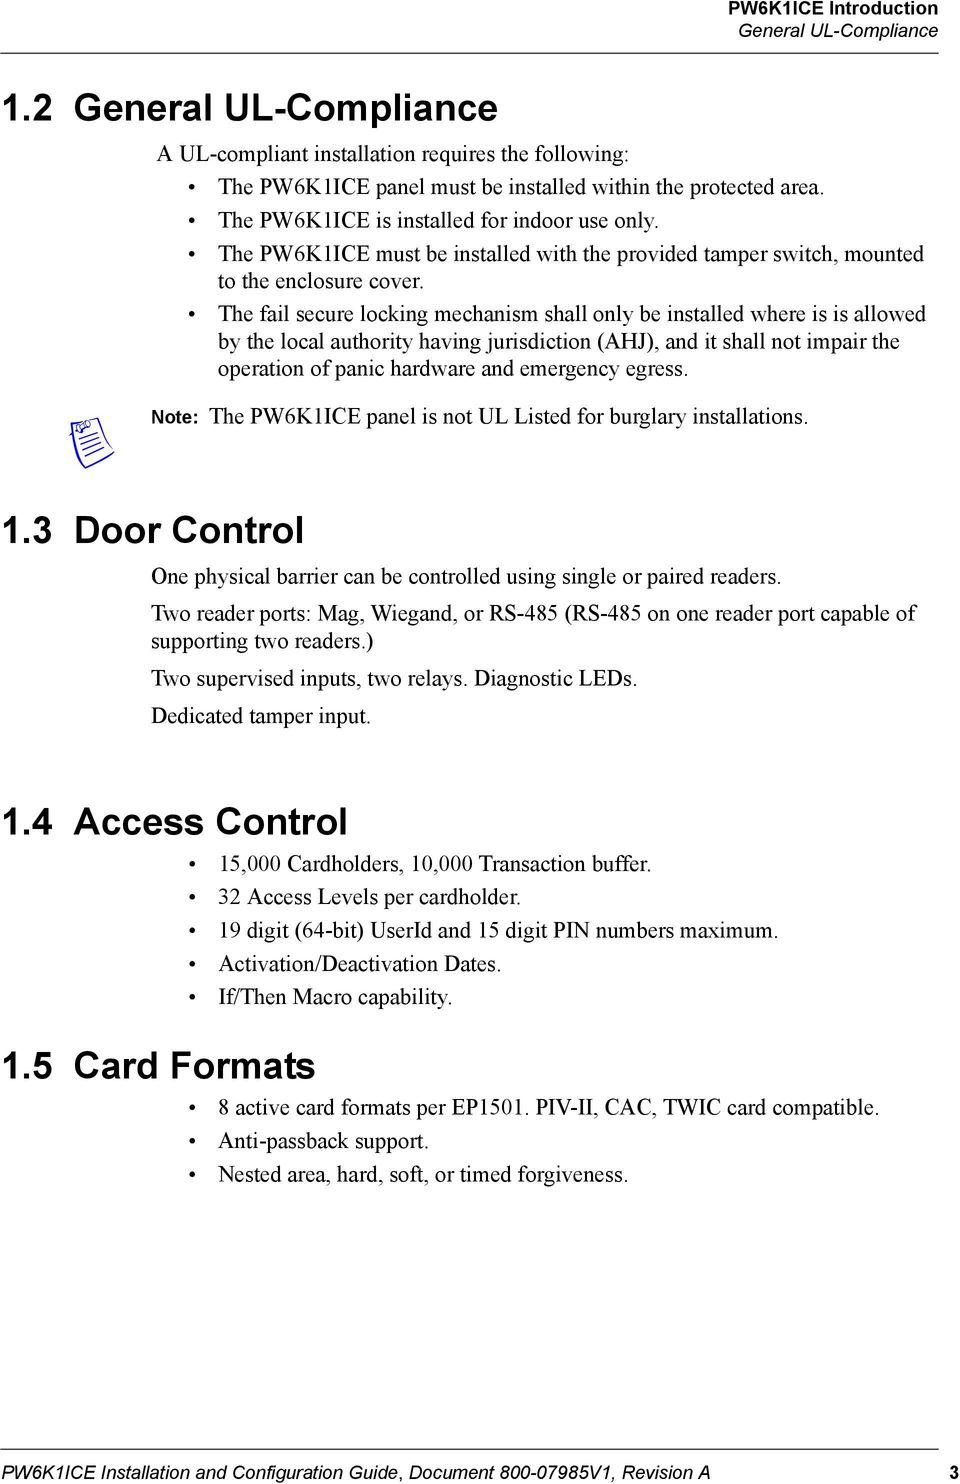 Pw6k1ice Intelligent Controller Installation And Configuration Guide Honeywell Op10hons The Fail Secure Locking Mechanism Shall Only Be Installed Where Is Allowed By Local